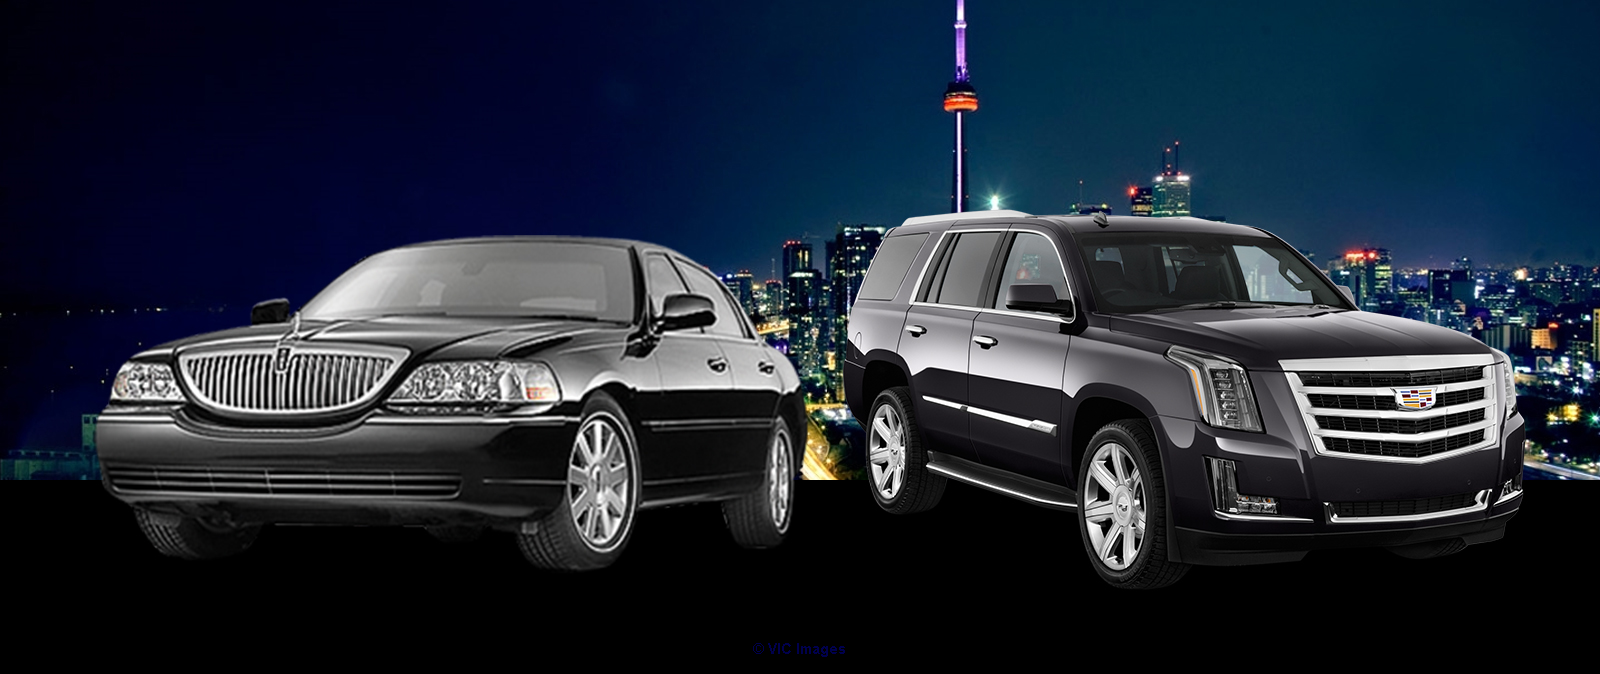 Burlington Airport Taxi, Burlington Airport Limo Ottawa, Ontario, Canada Classifieds